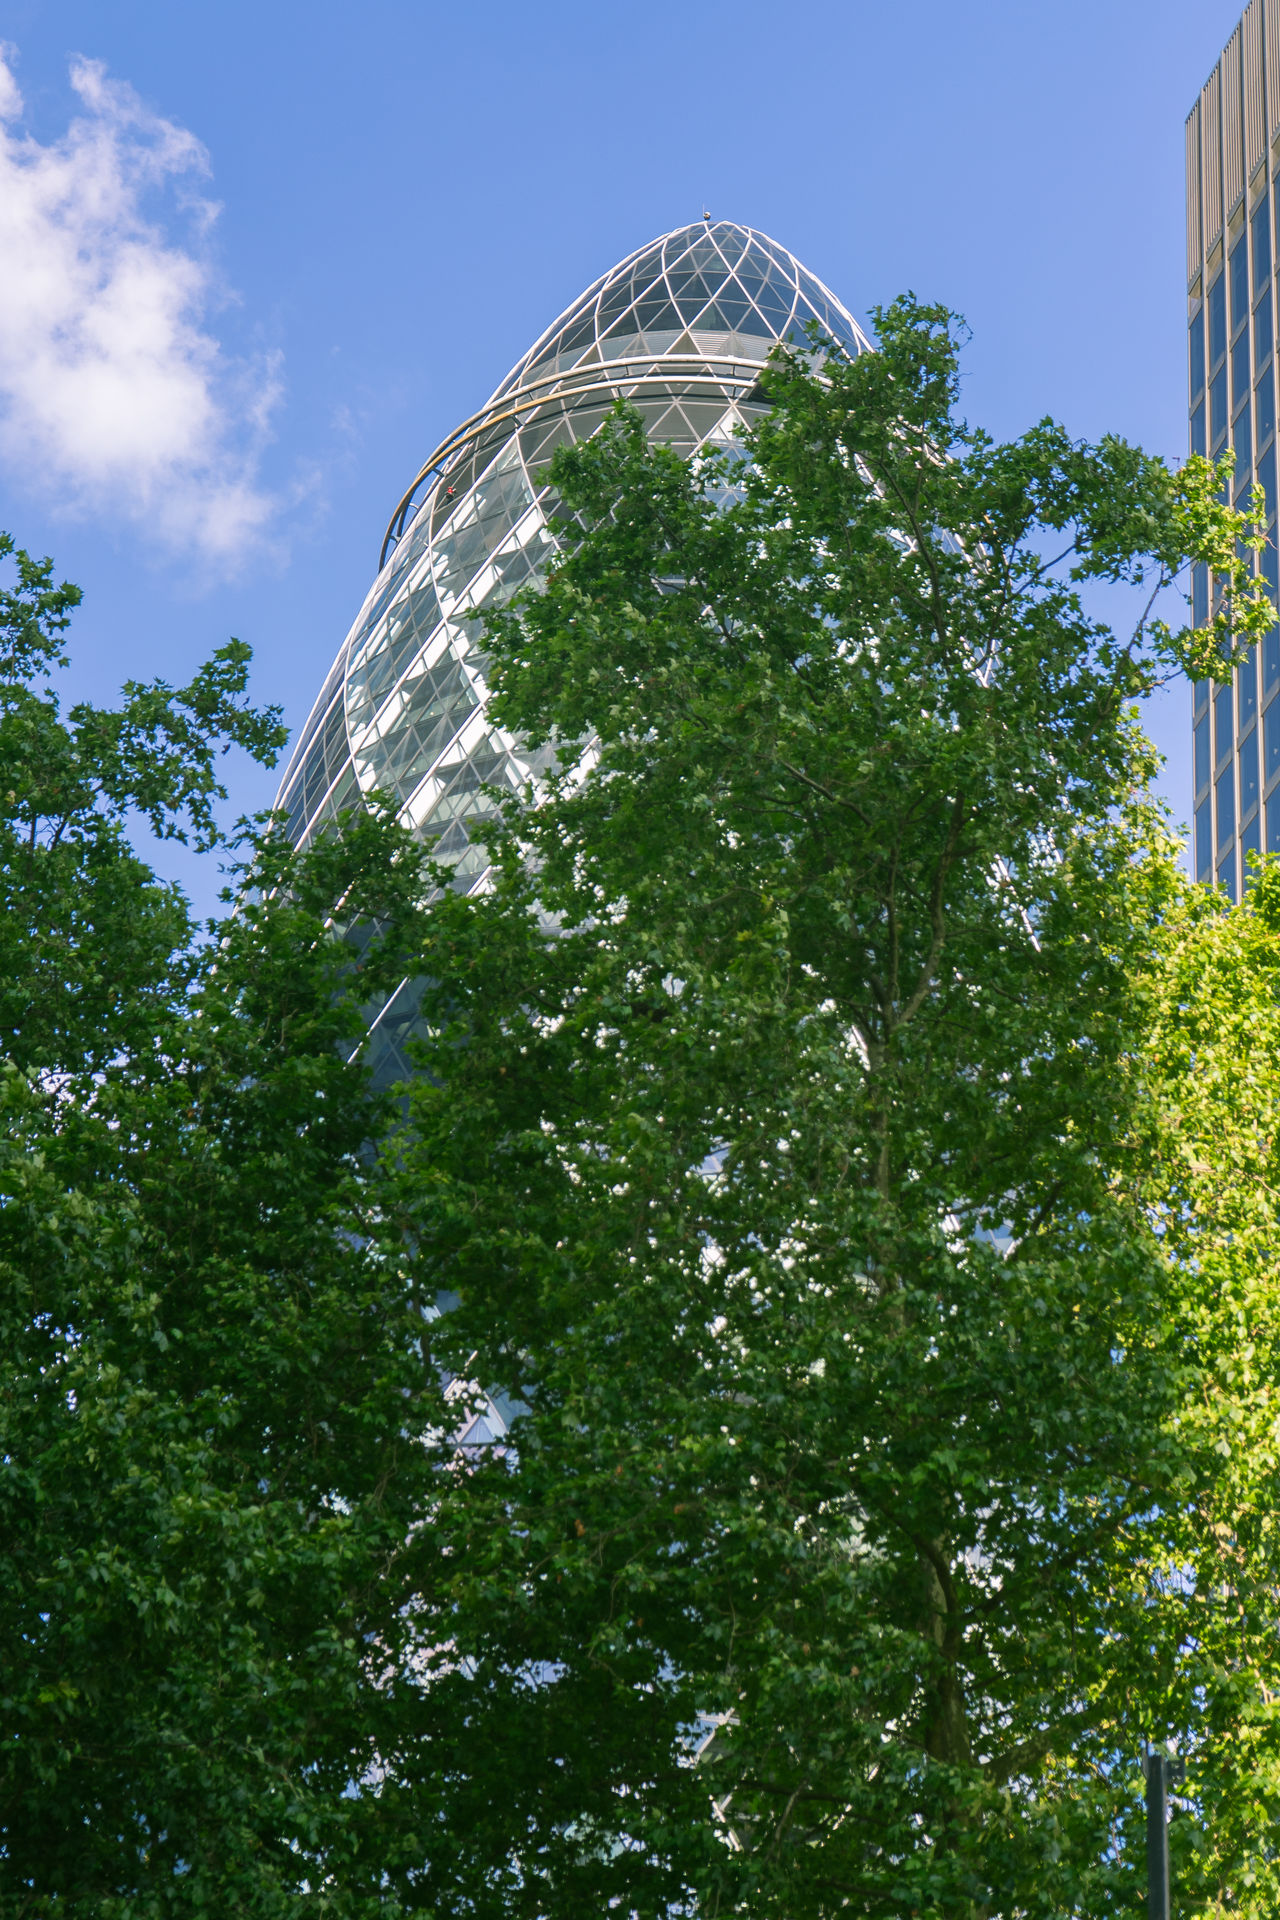 Adapted To The City Architecture Backgrounds City City Of London Cloud - Sky Futuristic Gherkin Gherkin Building Gherkin Tower London London Lifestyle LONDON❤ Low Angle View Modern No People Outdoors Sky Summer Tree